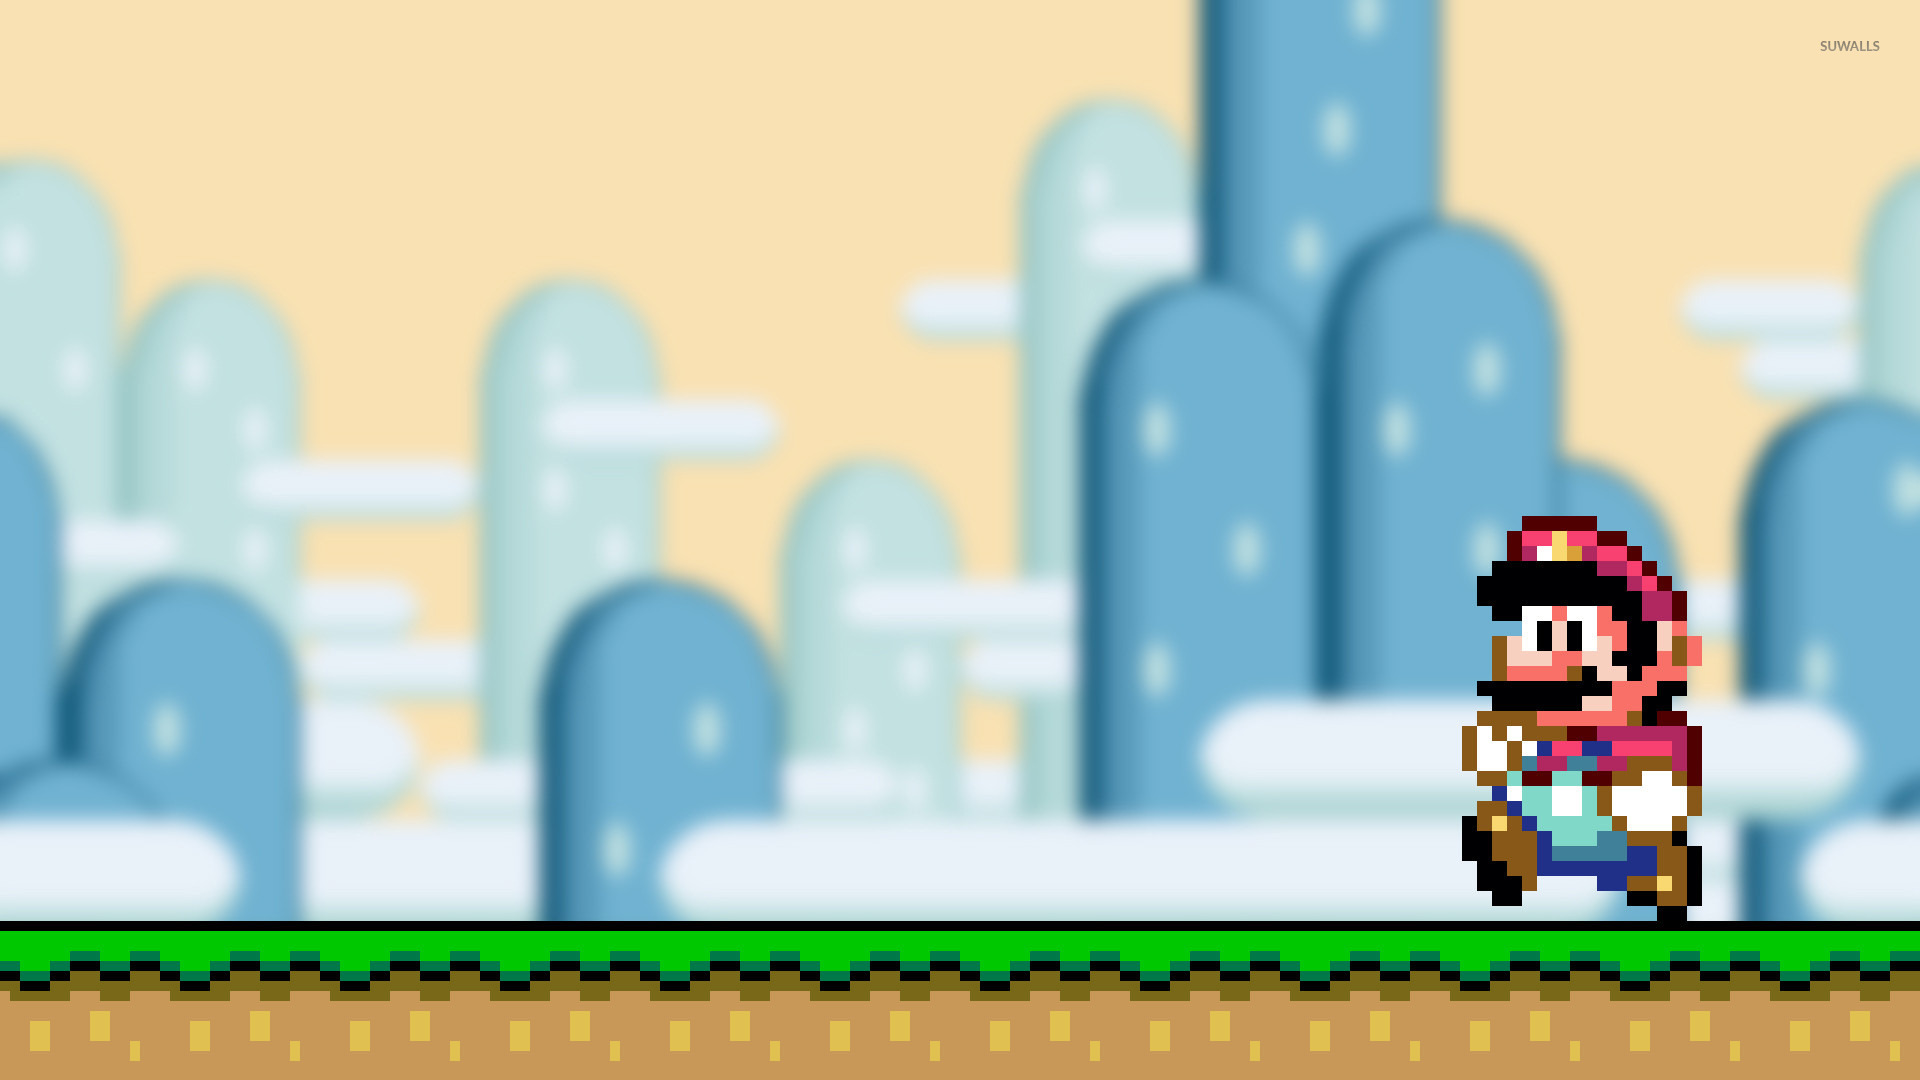 Super Mario 2 Wallpaper Game Wallpapers 21051